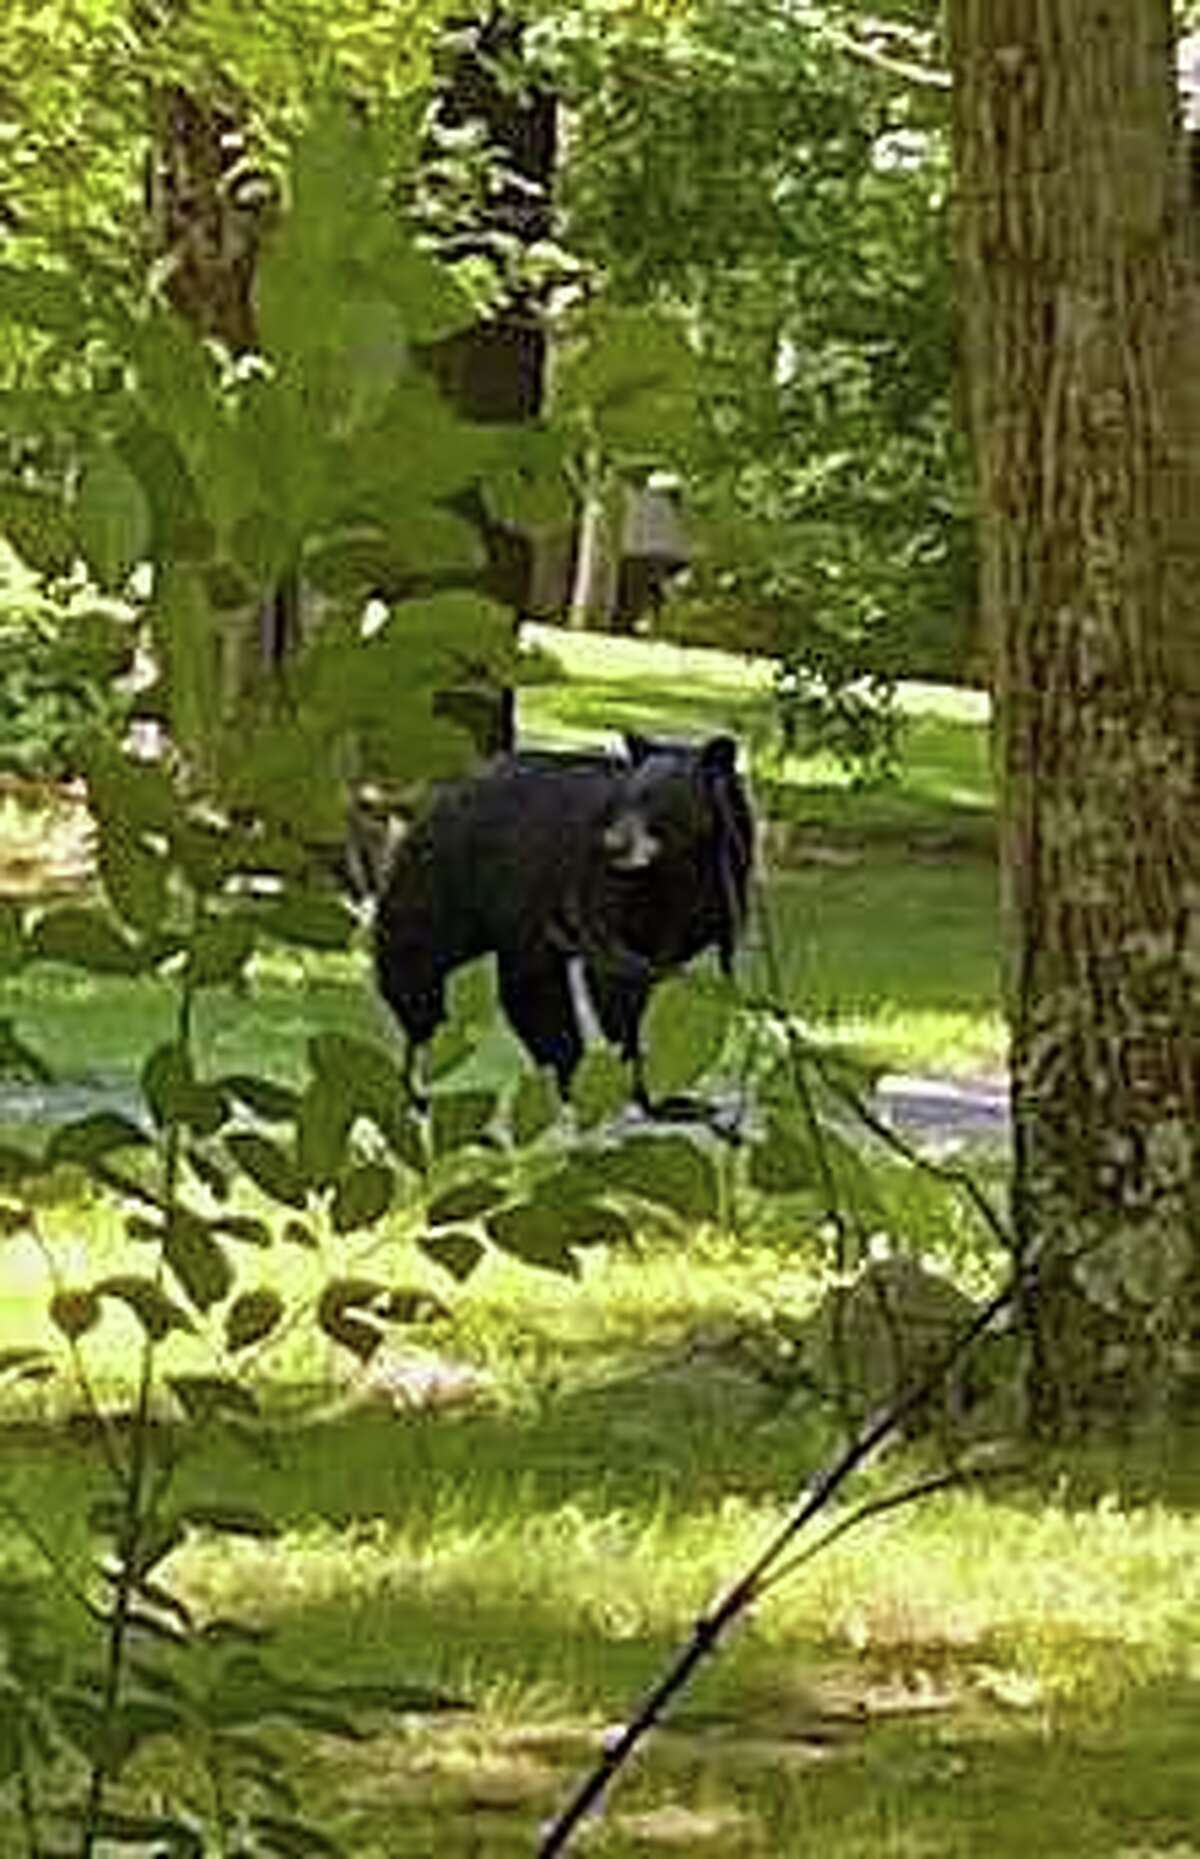 Stamford police are again reminding residents to be on the lookout for bears in the city after two recent sightings on Sunday, June 8, 2020.